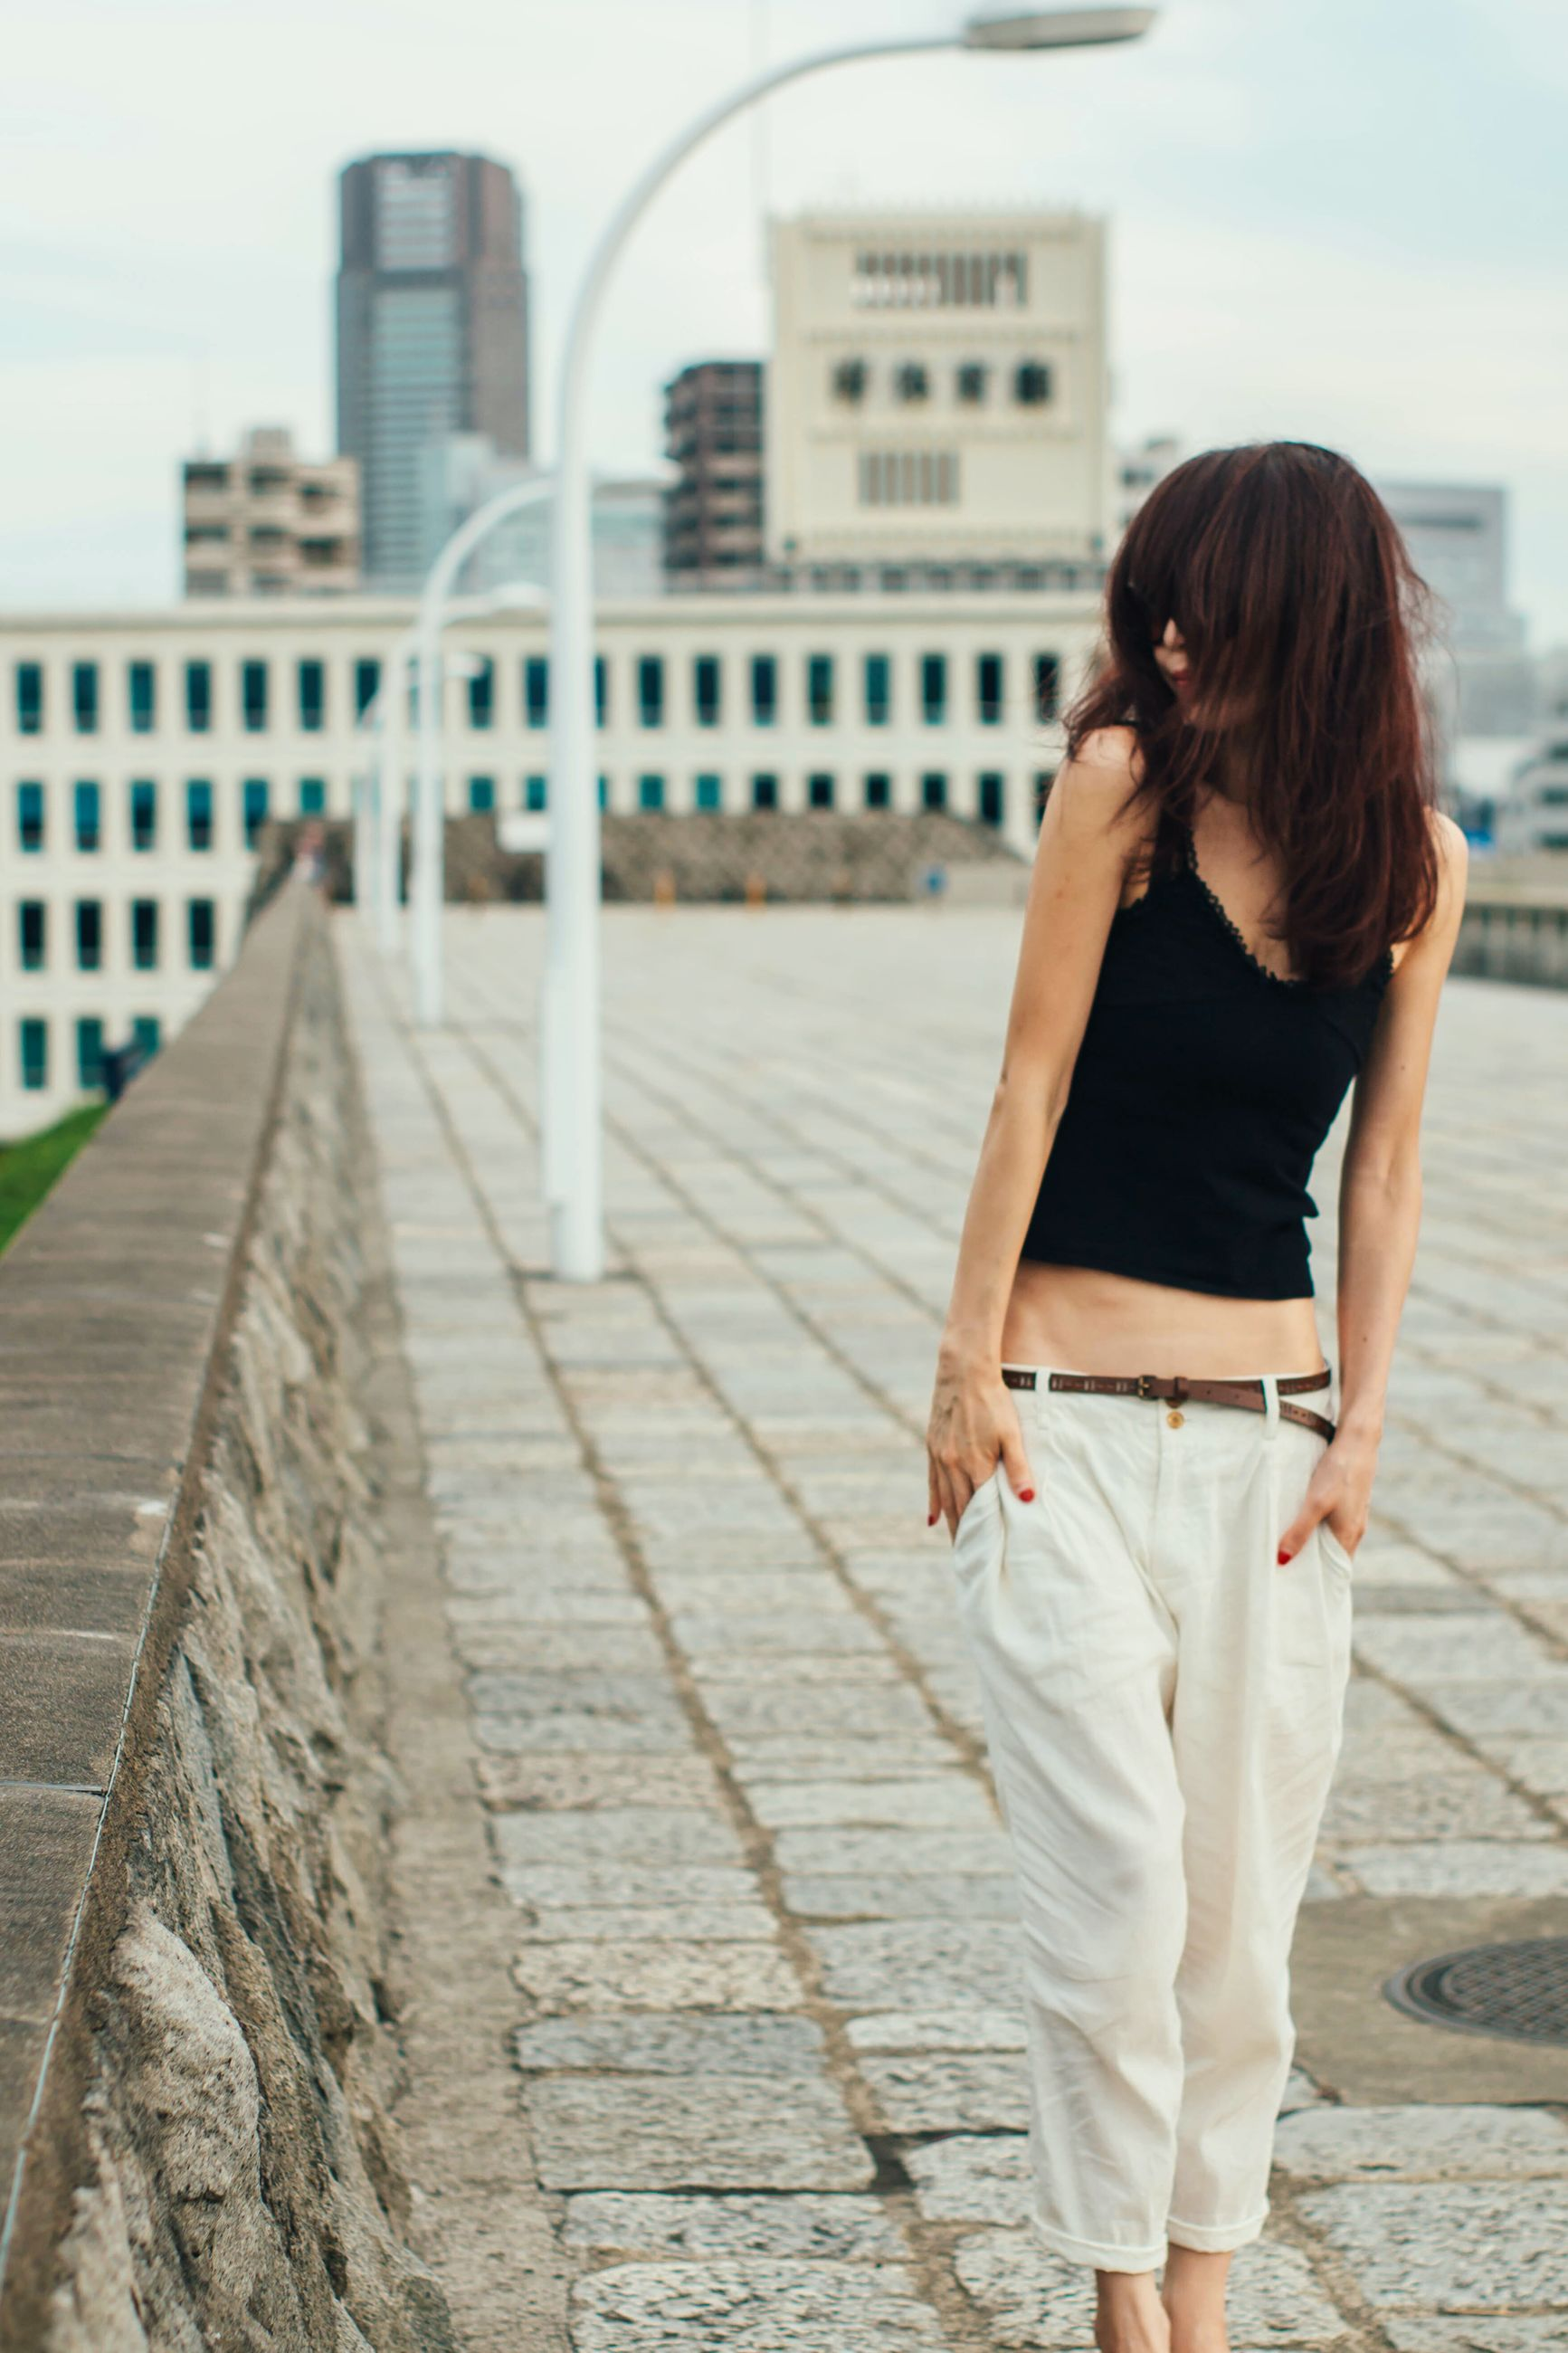 real people, casual clothing, full length, built structure, one person, building exterior, architecture, outdoors, young adult, leisure activity, lifestyles, rear view, day, young women, walking, standing, retaining wall, city, sky